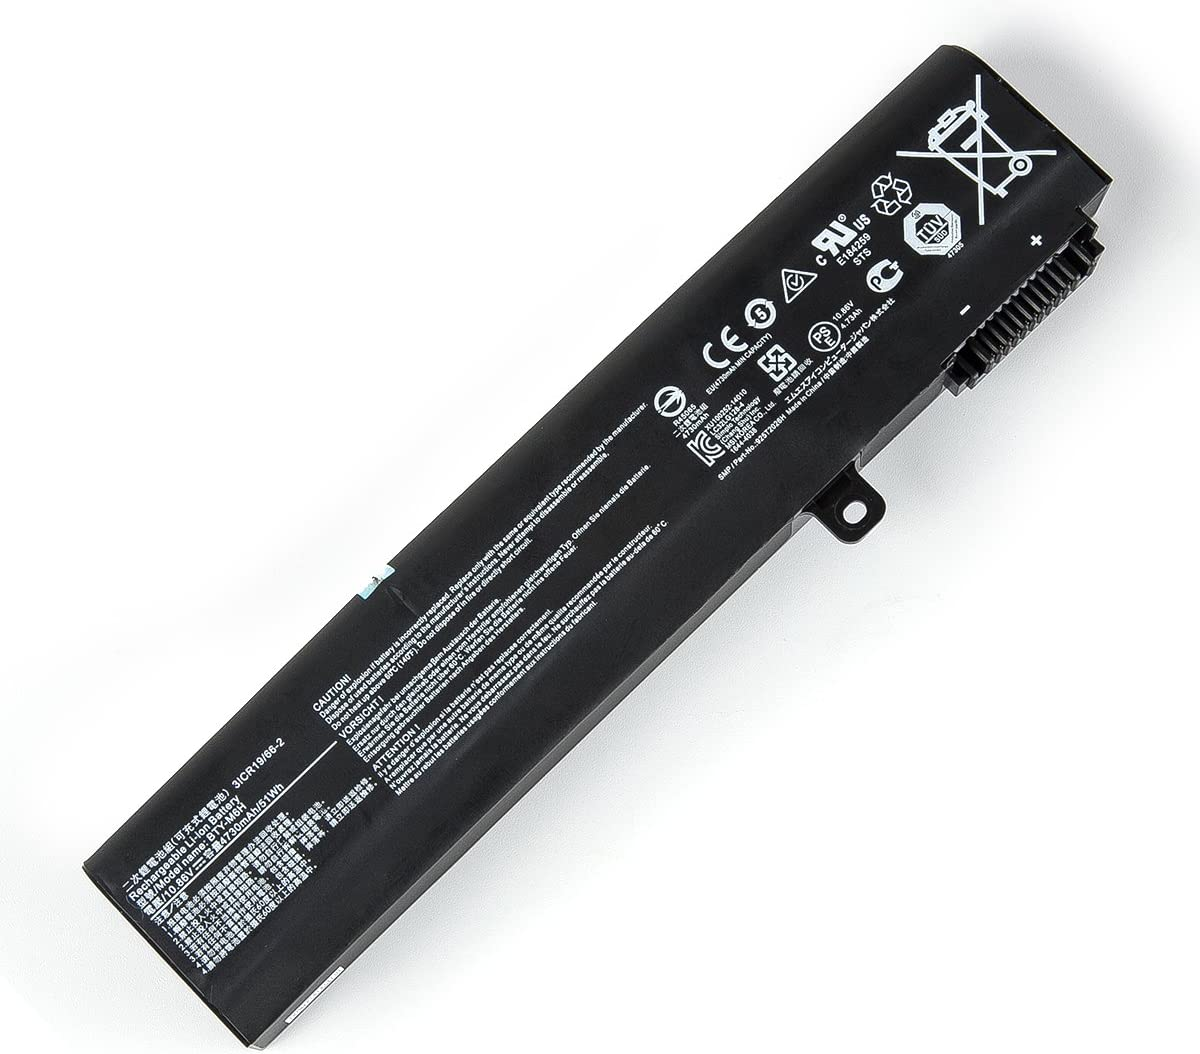 Amanda BTY-M6H Battery 10.86V 4730mAh/51Wh Replacement for MSI PE60 GE62 GP62 2QE GL62M GE62VR PE70 GE72 GL72 GP72 MS-1792 MS-16J2